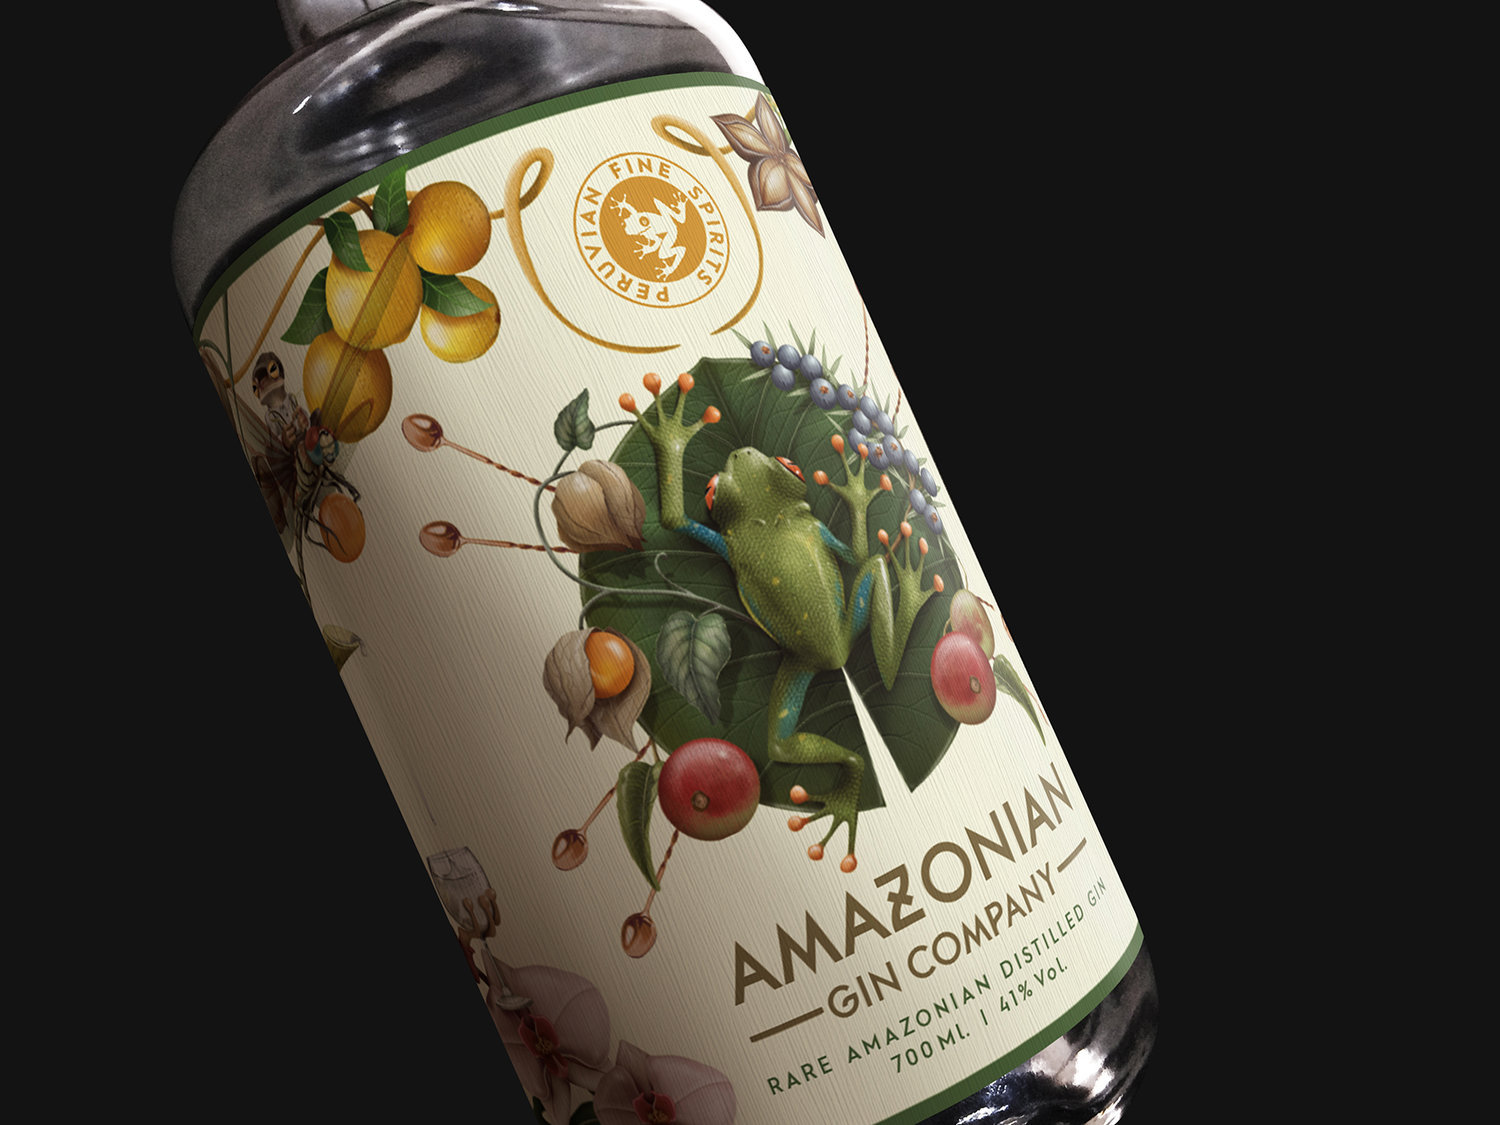 Branding, Illustration and Packaging for Amazonian Gin Company Perú